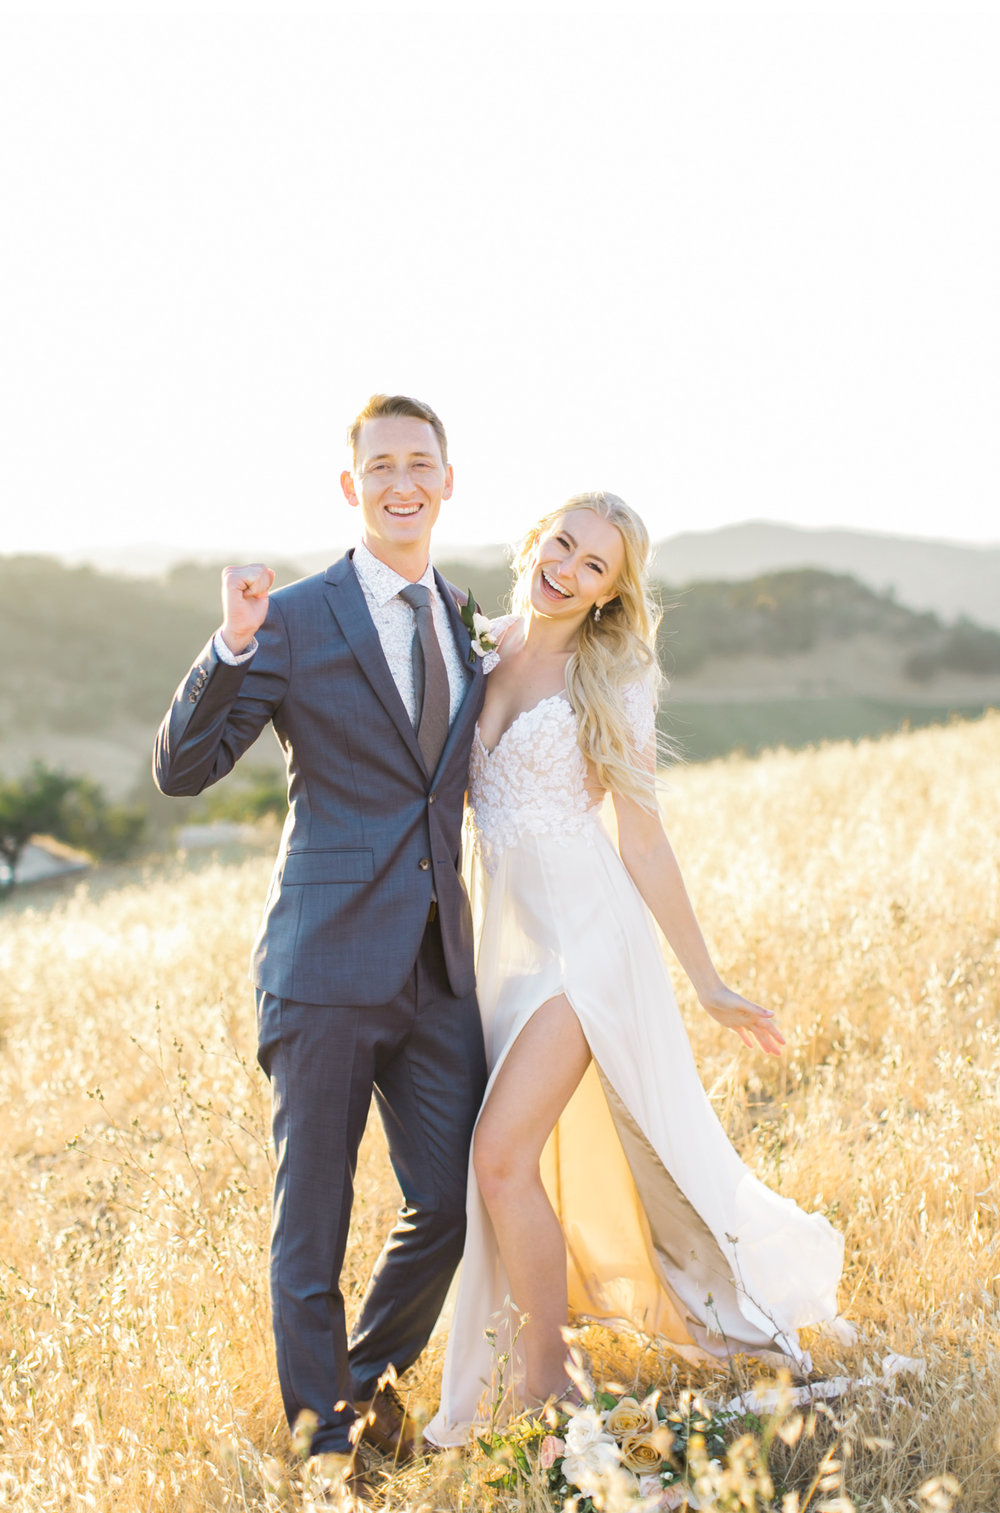 Natalie-Schutt-Photography's-Wedding-Style-Me-Pretty-Paso-Robles_02.jpg